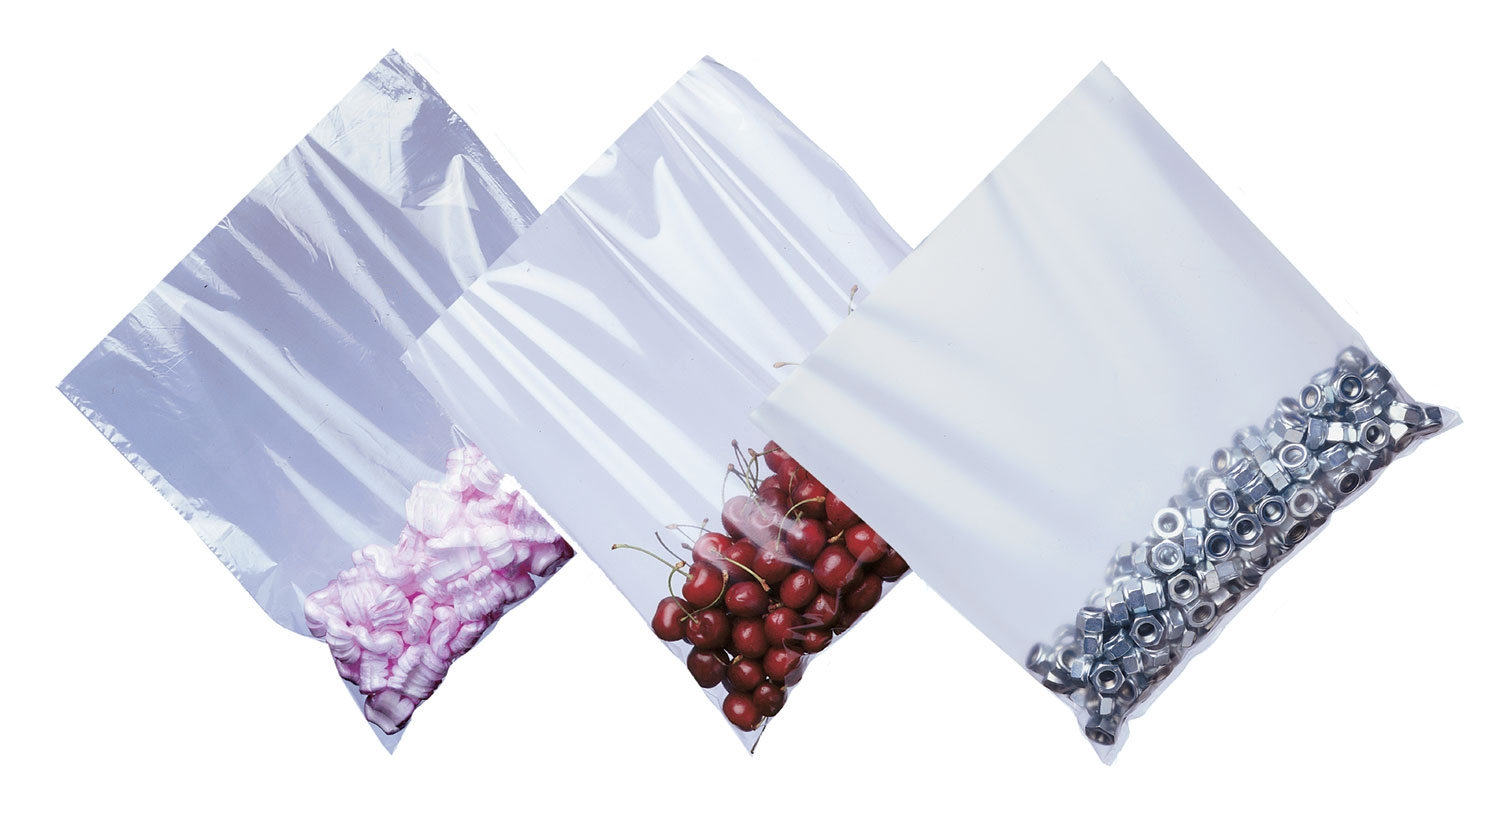 15inch X 20inch Lightweight Clear Easy Opening Poly Bags